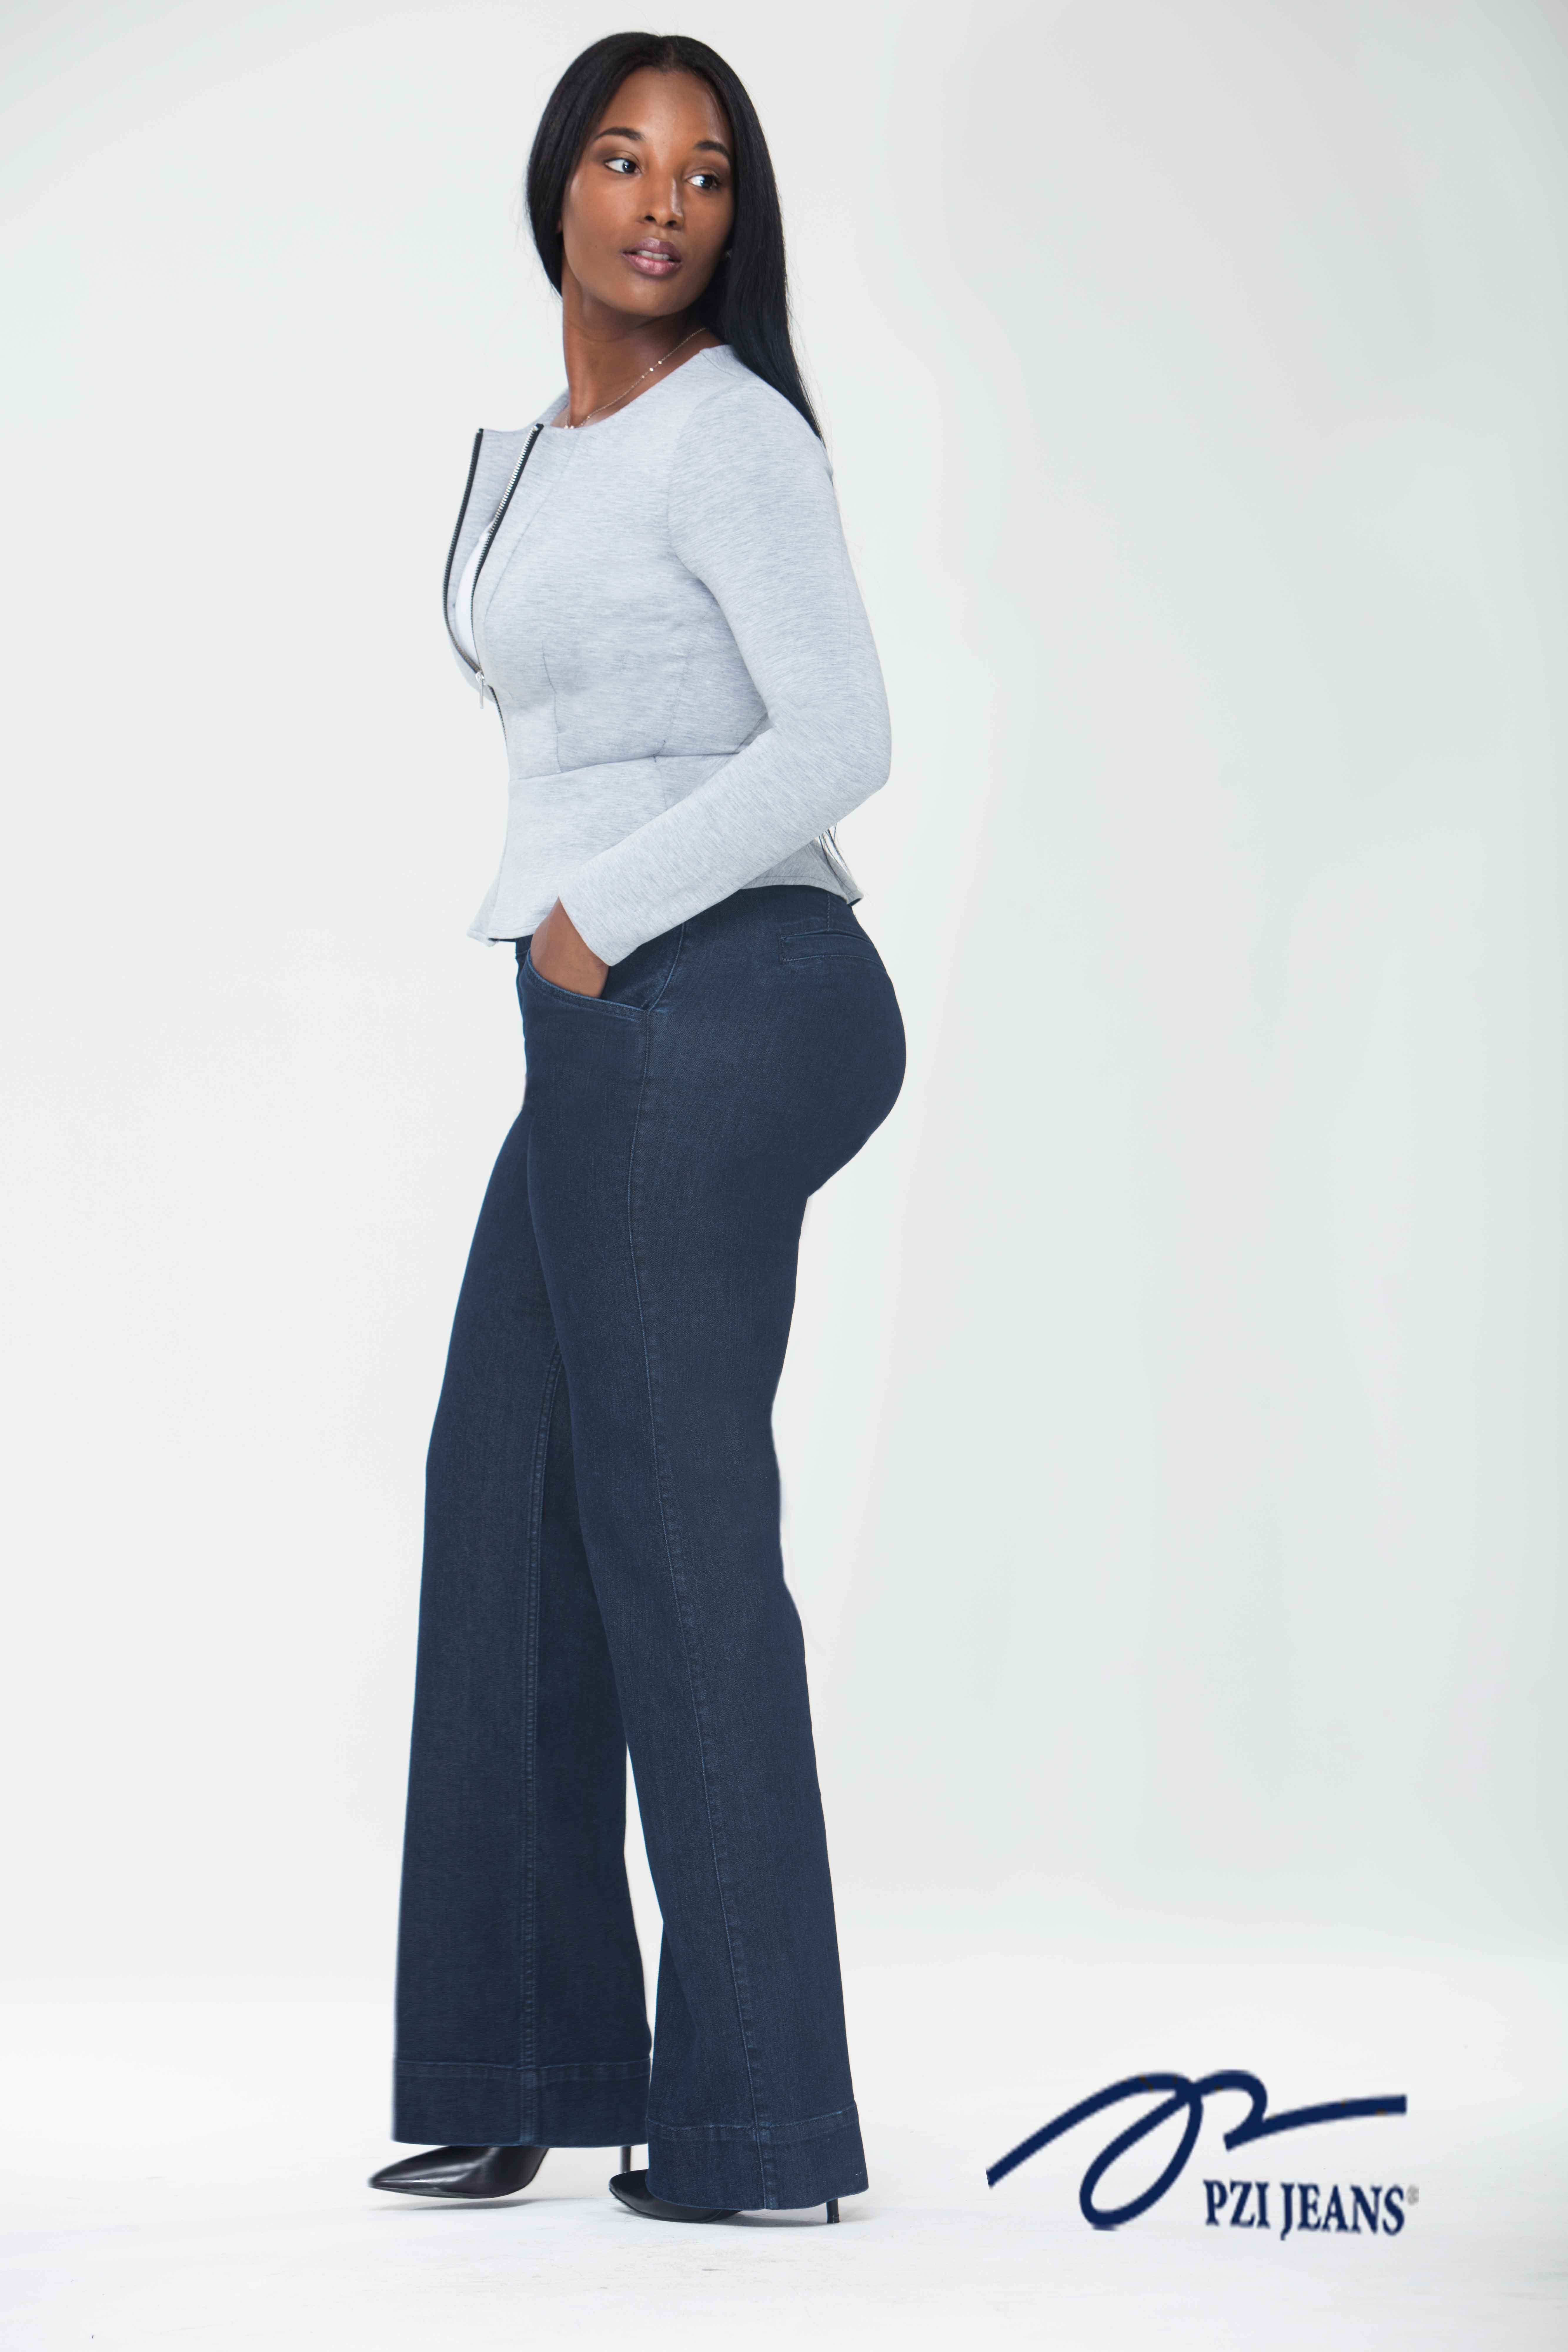 8a4ad71bd375b3 Shop for your curves and choose the Rachel Trouser perfect for work or date  night. Available in sizes 4-18; short-extra long inseams. #pzijeans #denim  ...